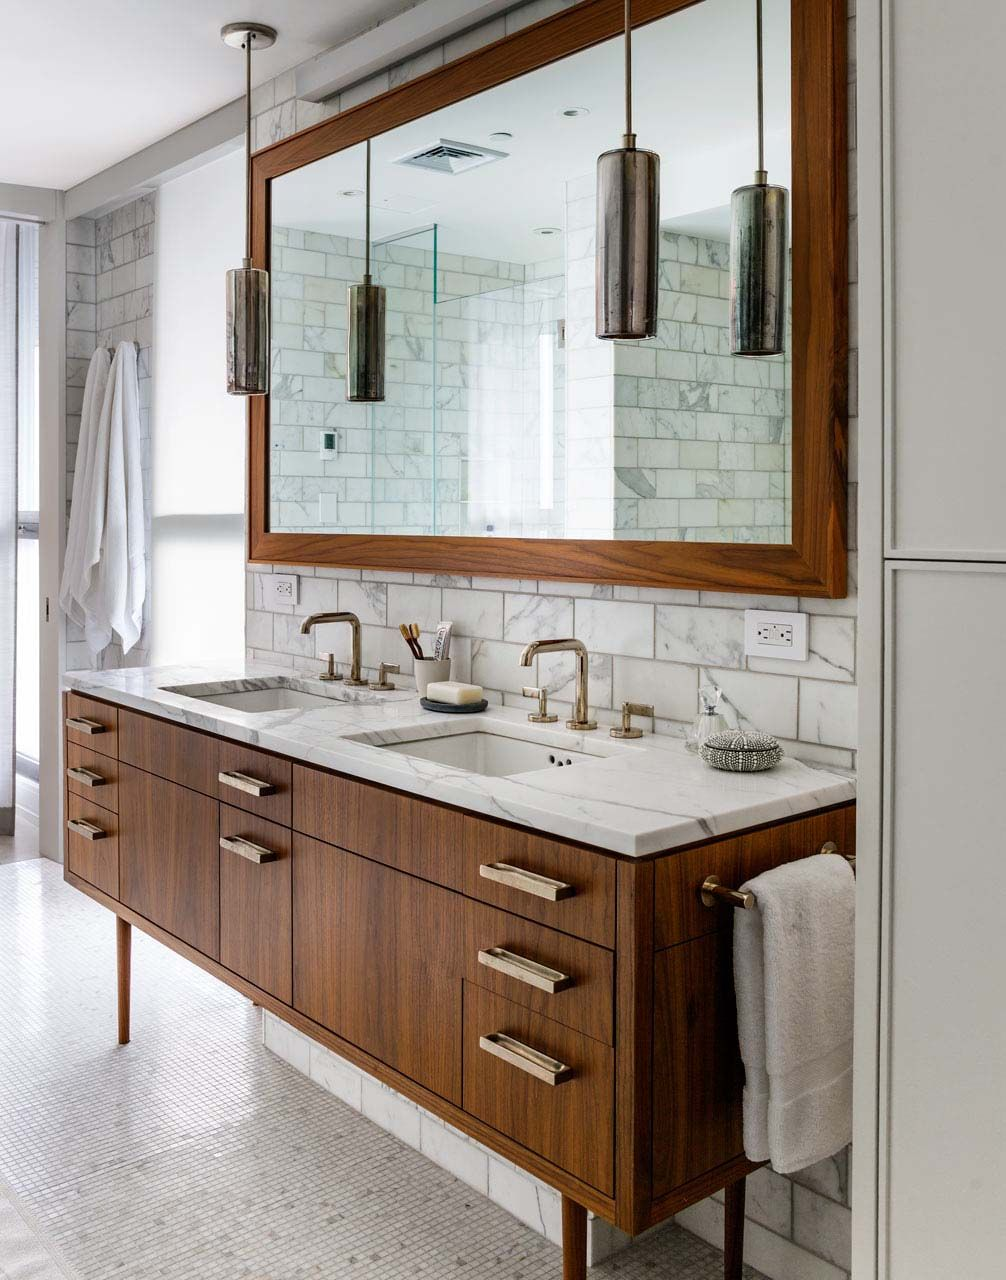 4 Amazing mid-century modern bathrooms to soak your senses